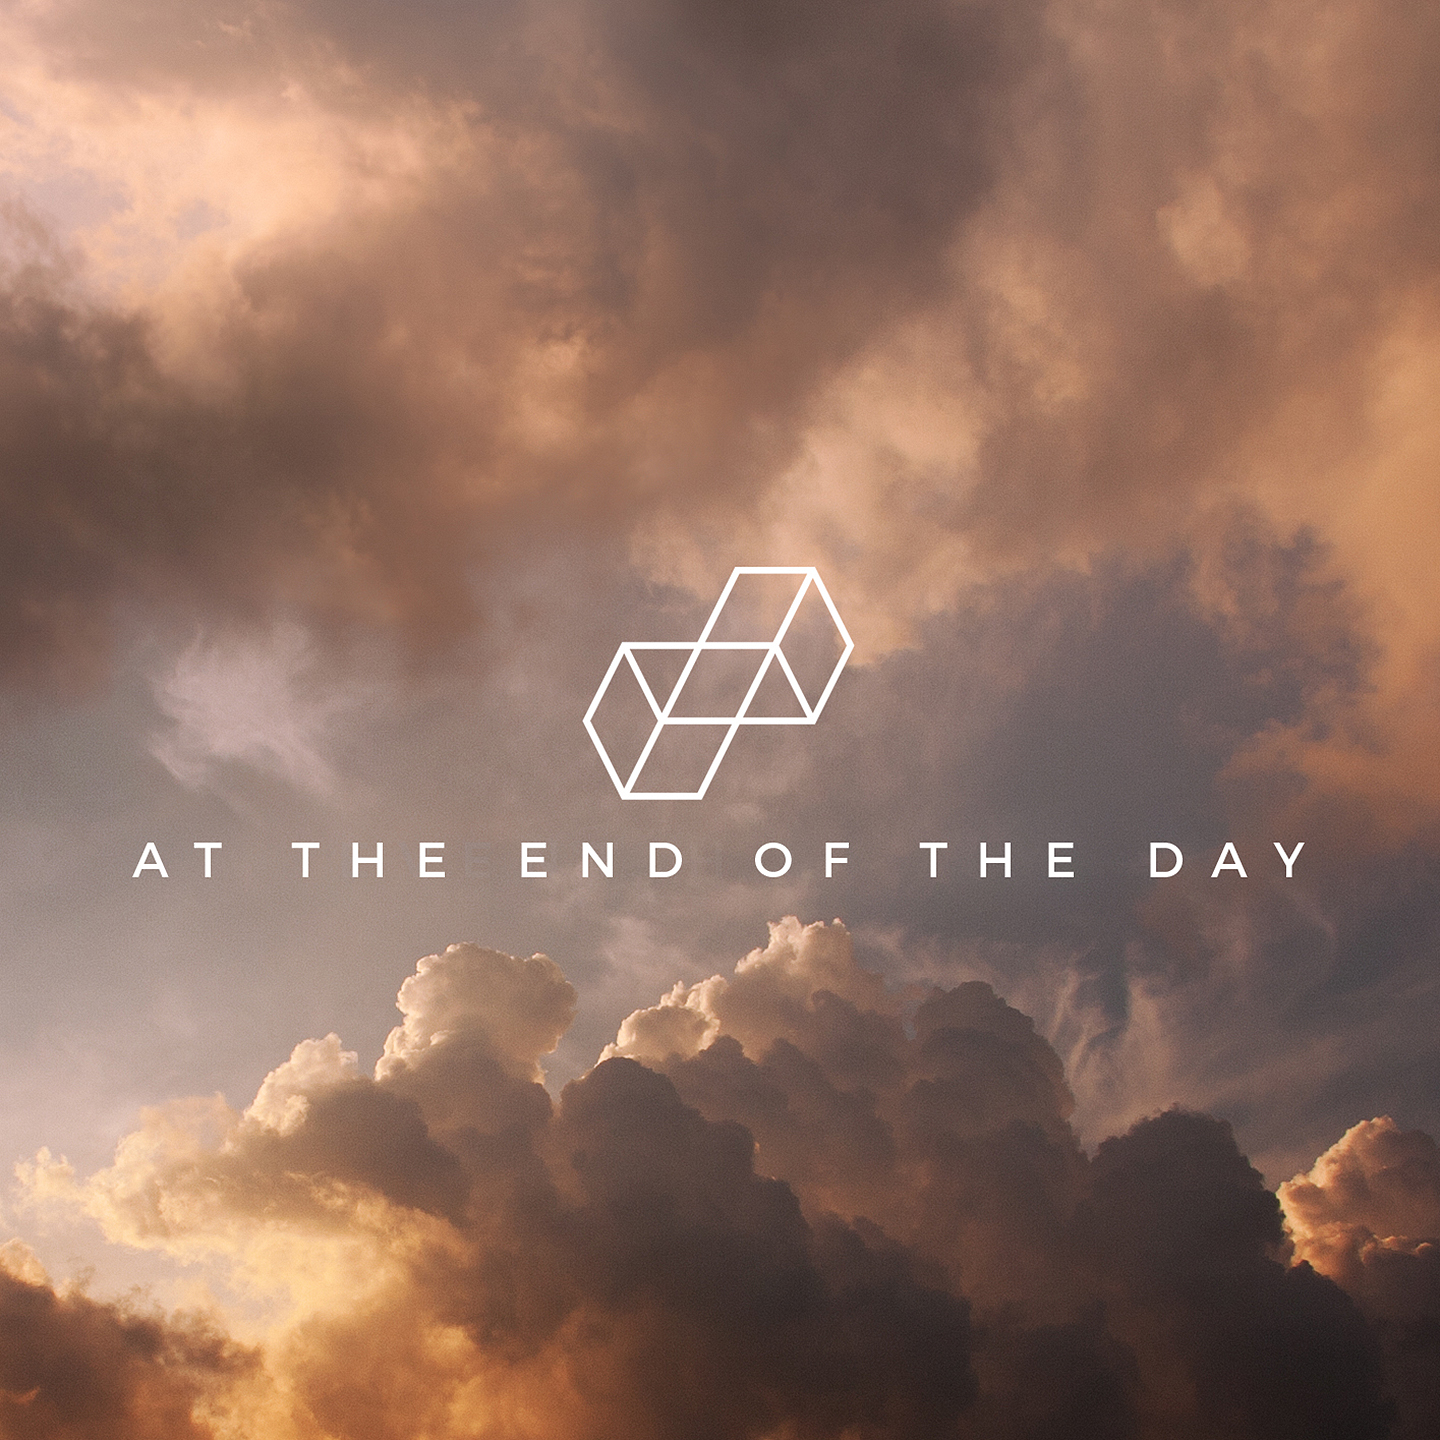 PREMIERE – Lisbon Kid – At the end of the day ( Justin Robertson Temple of Wonders remix)